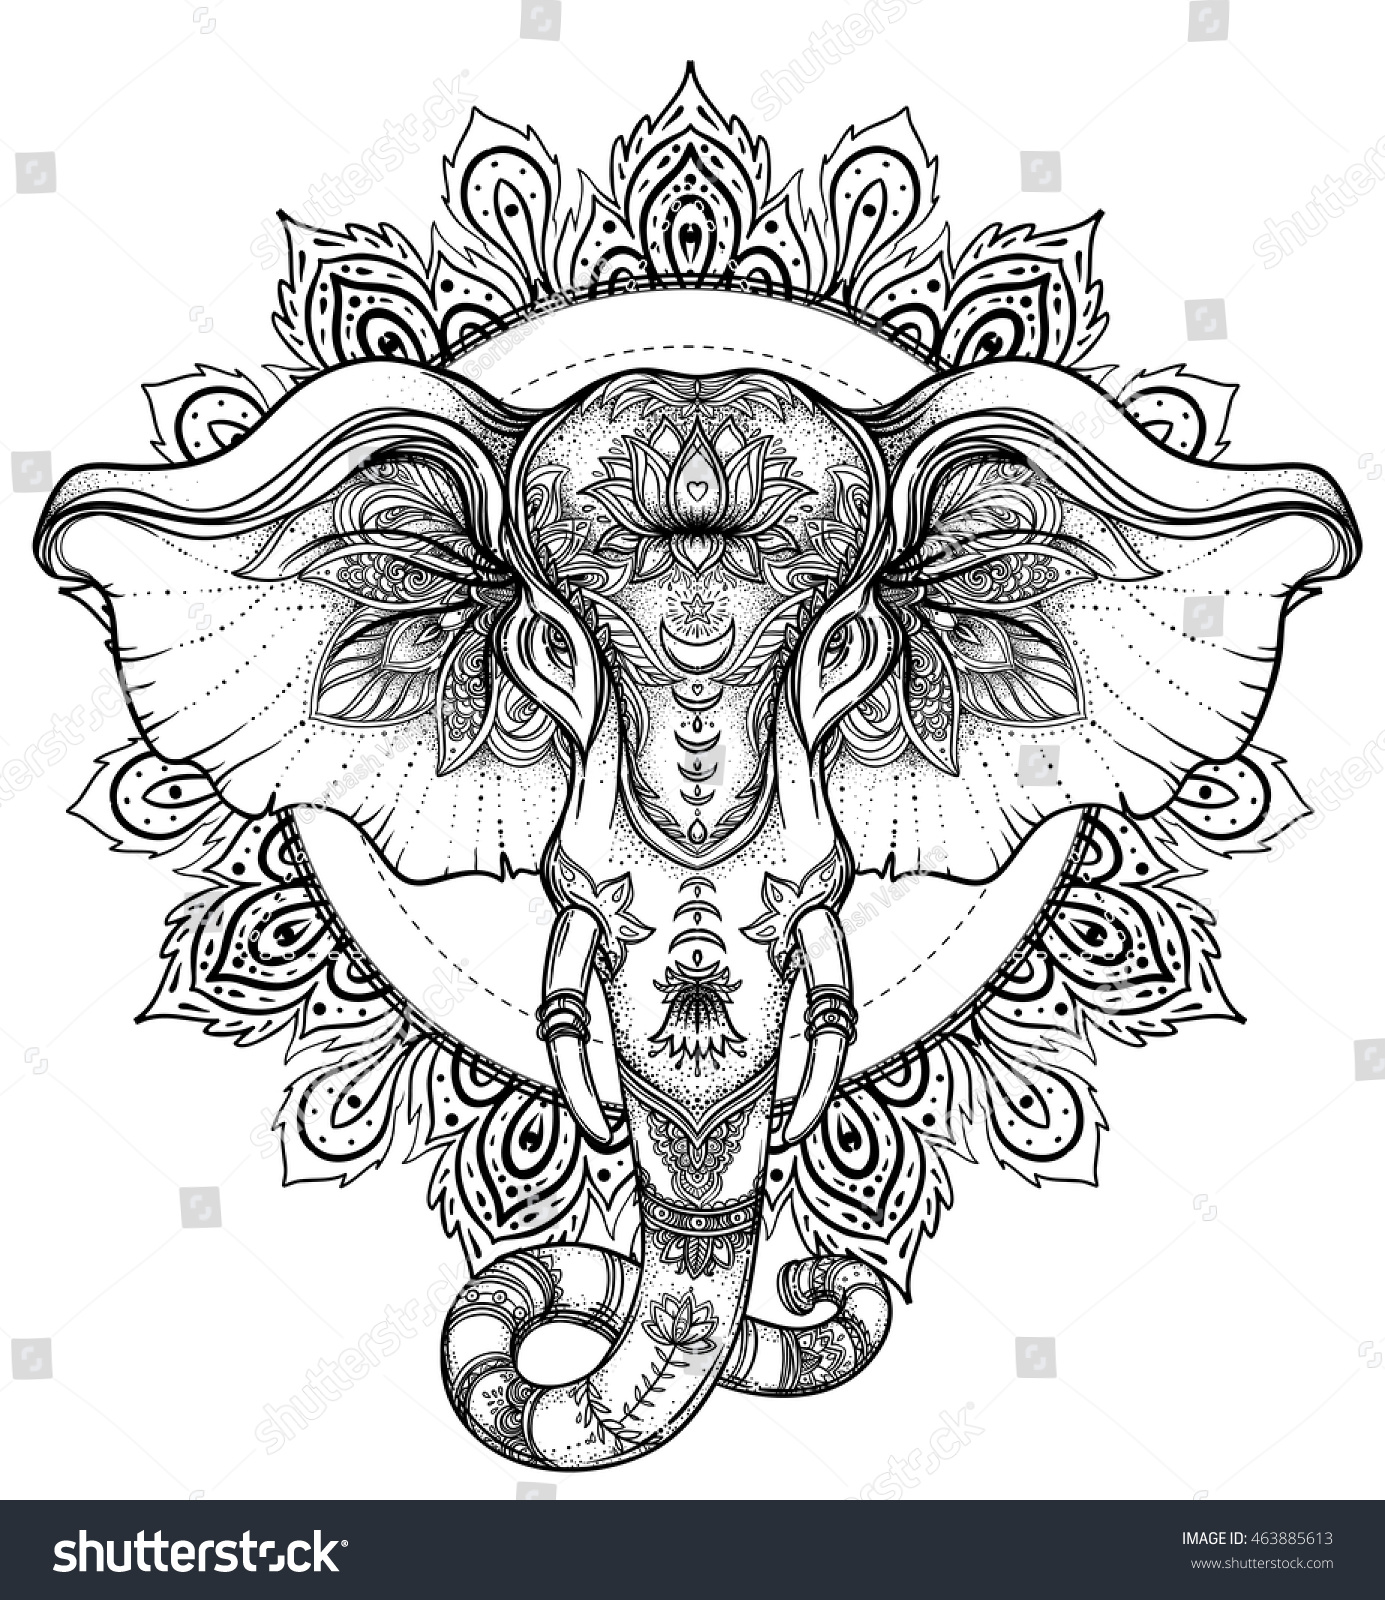 Beautiful Handdrawn Tribal Style Elephant Coloring Stock